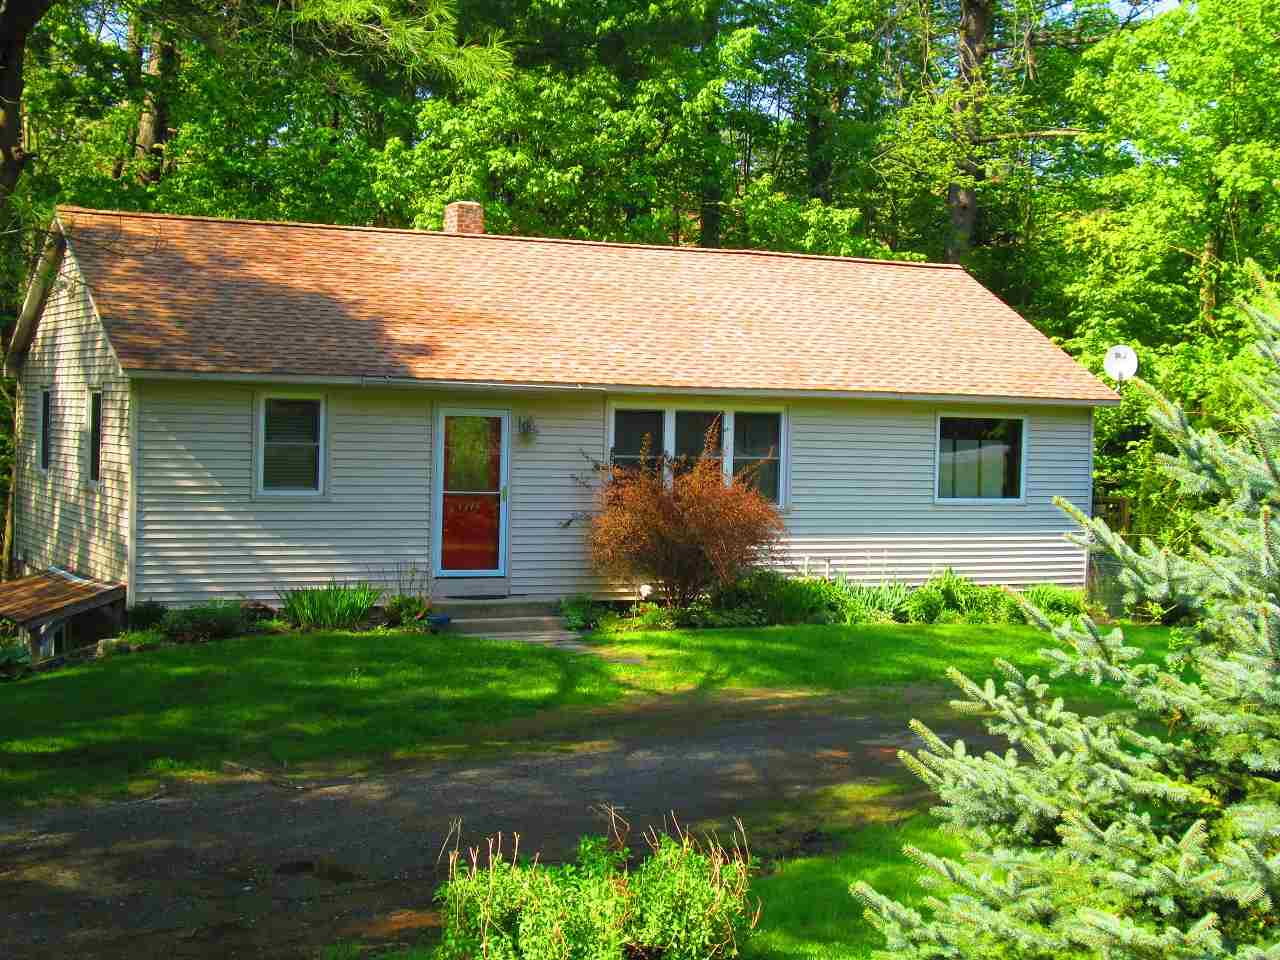 MLS 4751049: 1315 Route 9 Route, Chesterfield NH